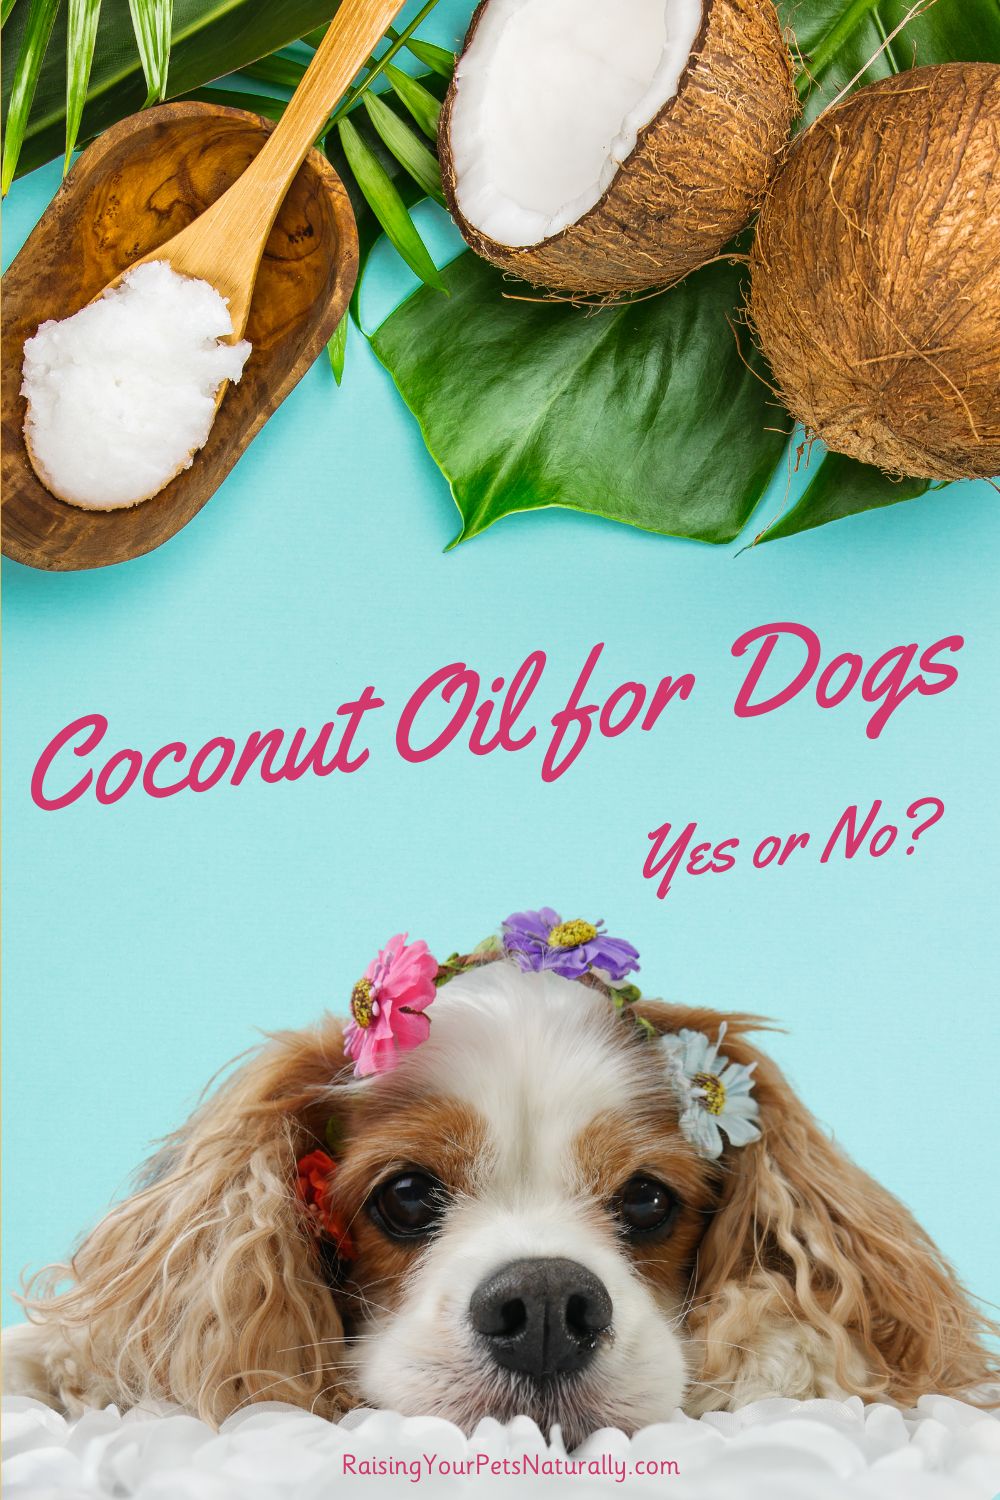 Benefits and Risks of Coconut Oil for Dogs | Is Coconut Oil Good for Dogs? (Early access for our Patreon community)